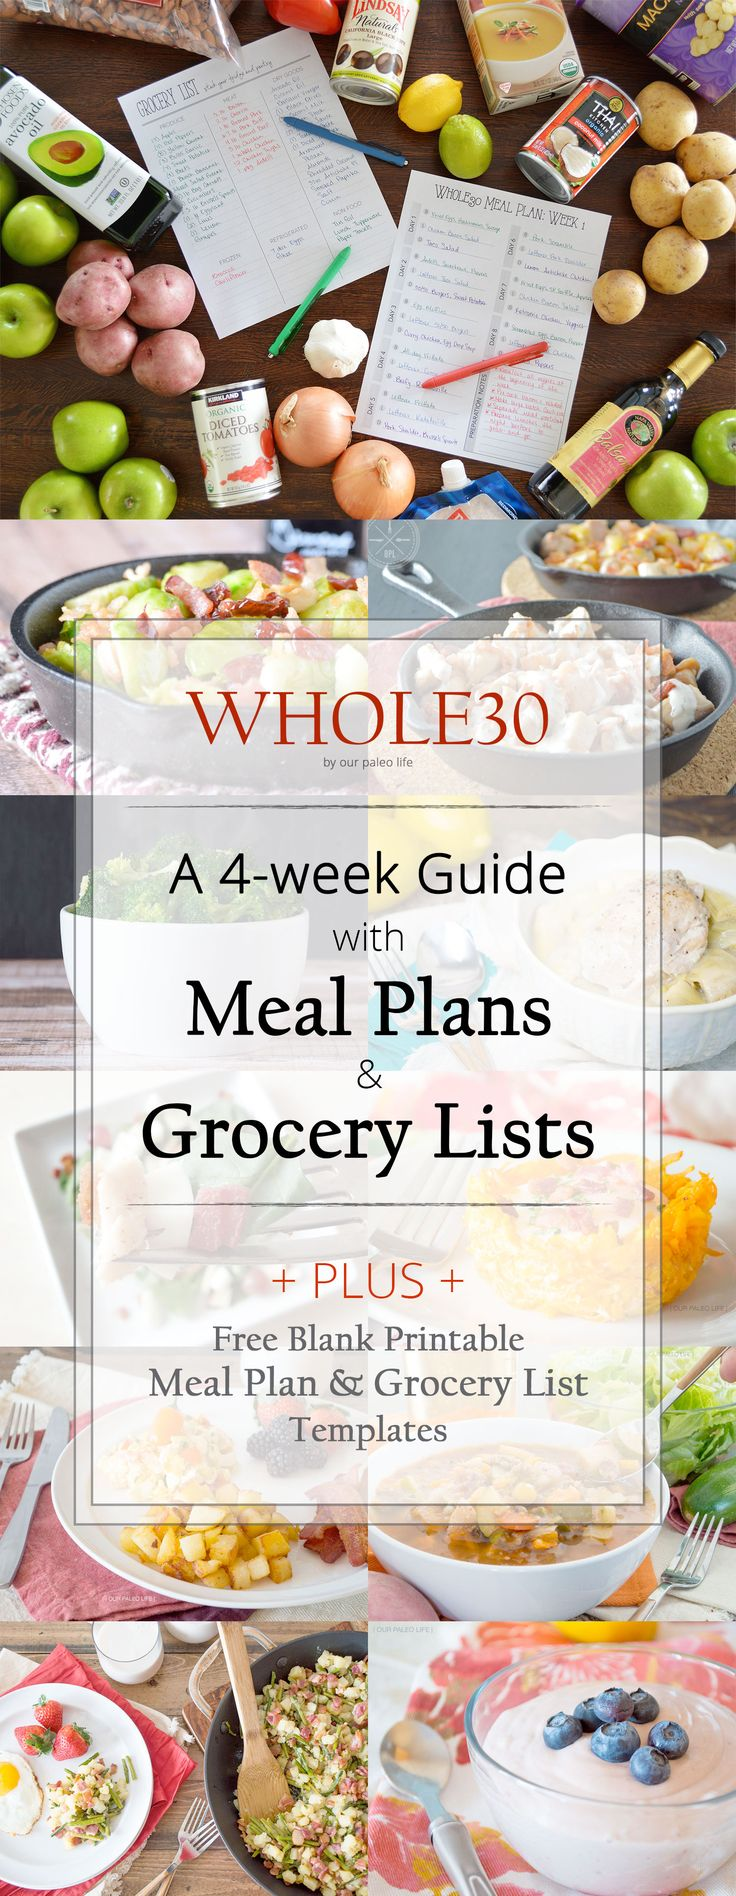 Whole30 Meal Plan & Grocery List   4 individual weeks of meal plans and grocery lists #whole30 #paleo